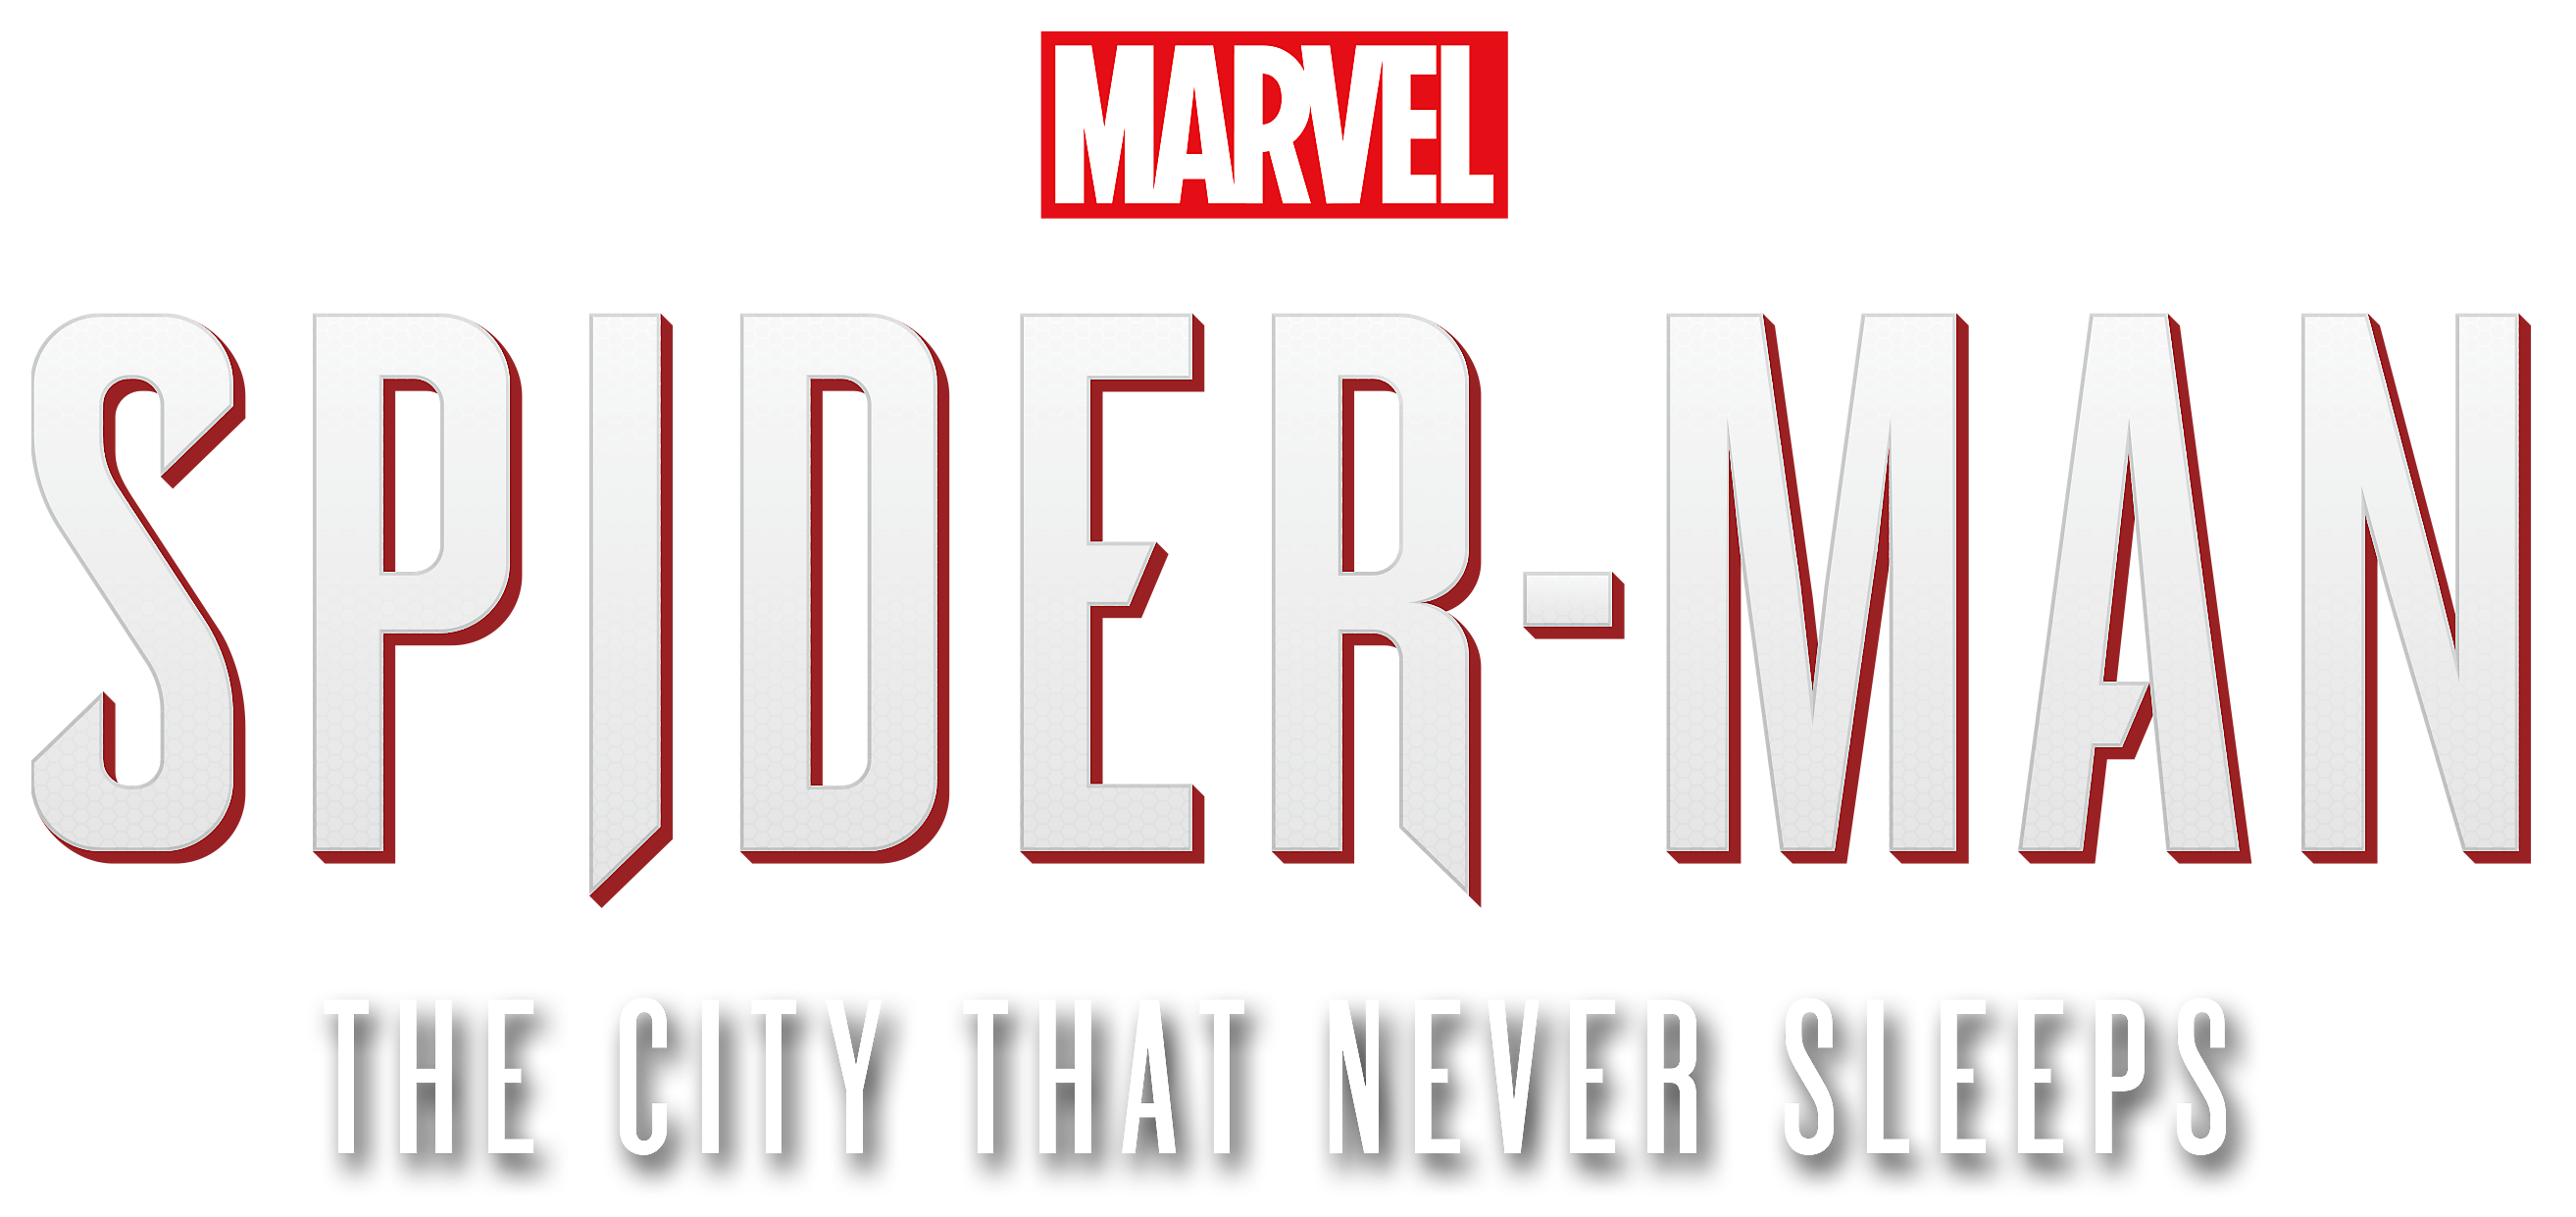 Marvel's Spider-Man: The City That Never Sleeps Logo